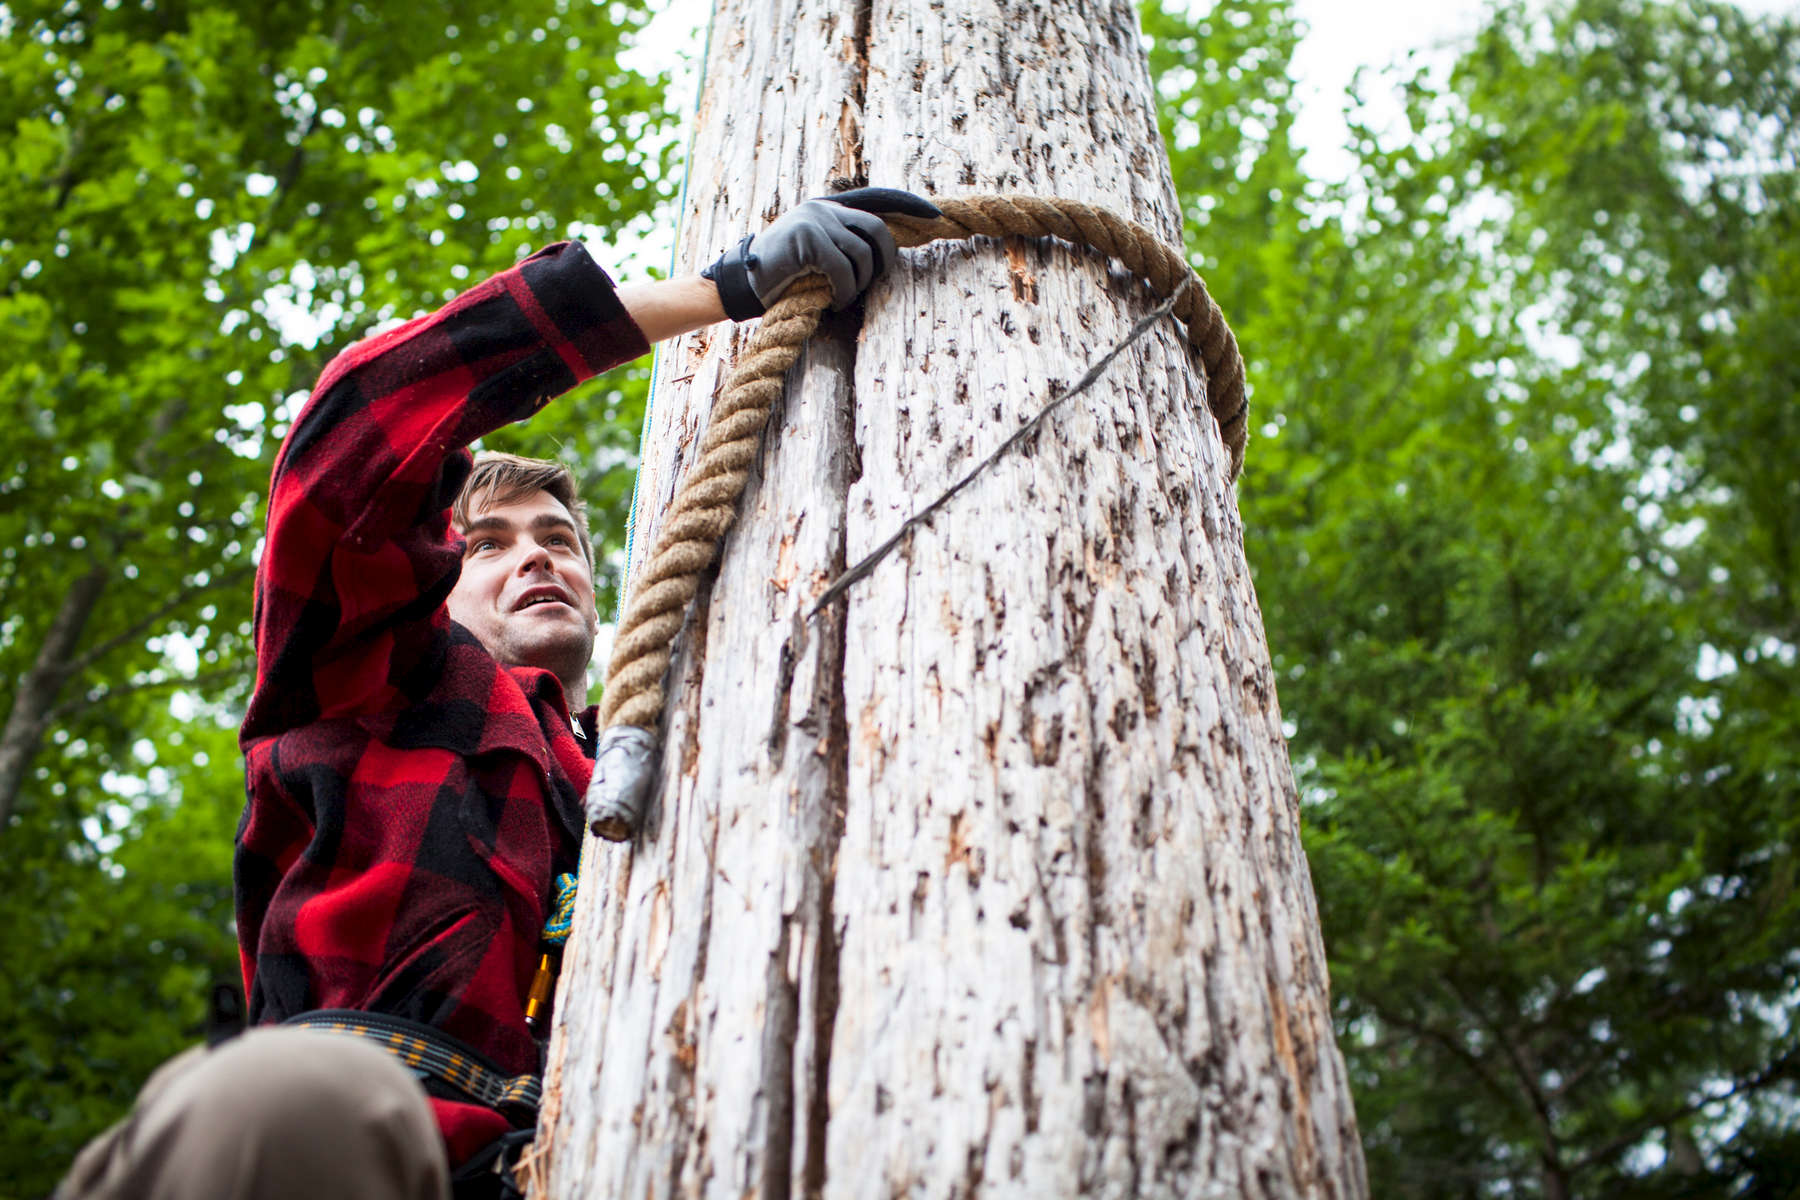 Martin Hemming log climbing while participating in the annual Adirondack Woodsmen\'s School at Paul Smith\'s College. by Monica Donovan for the Sunday Times